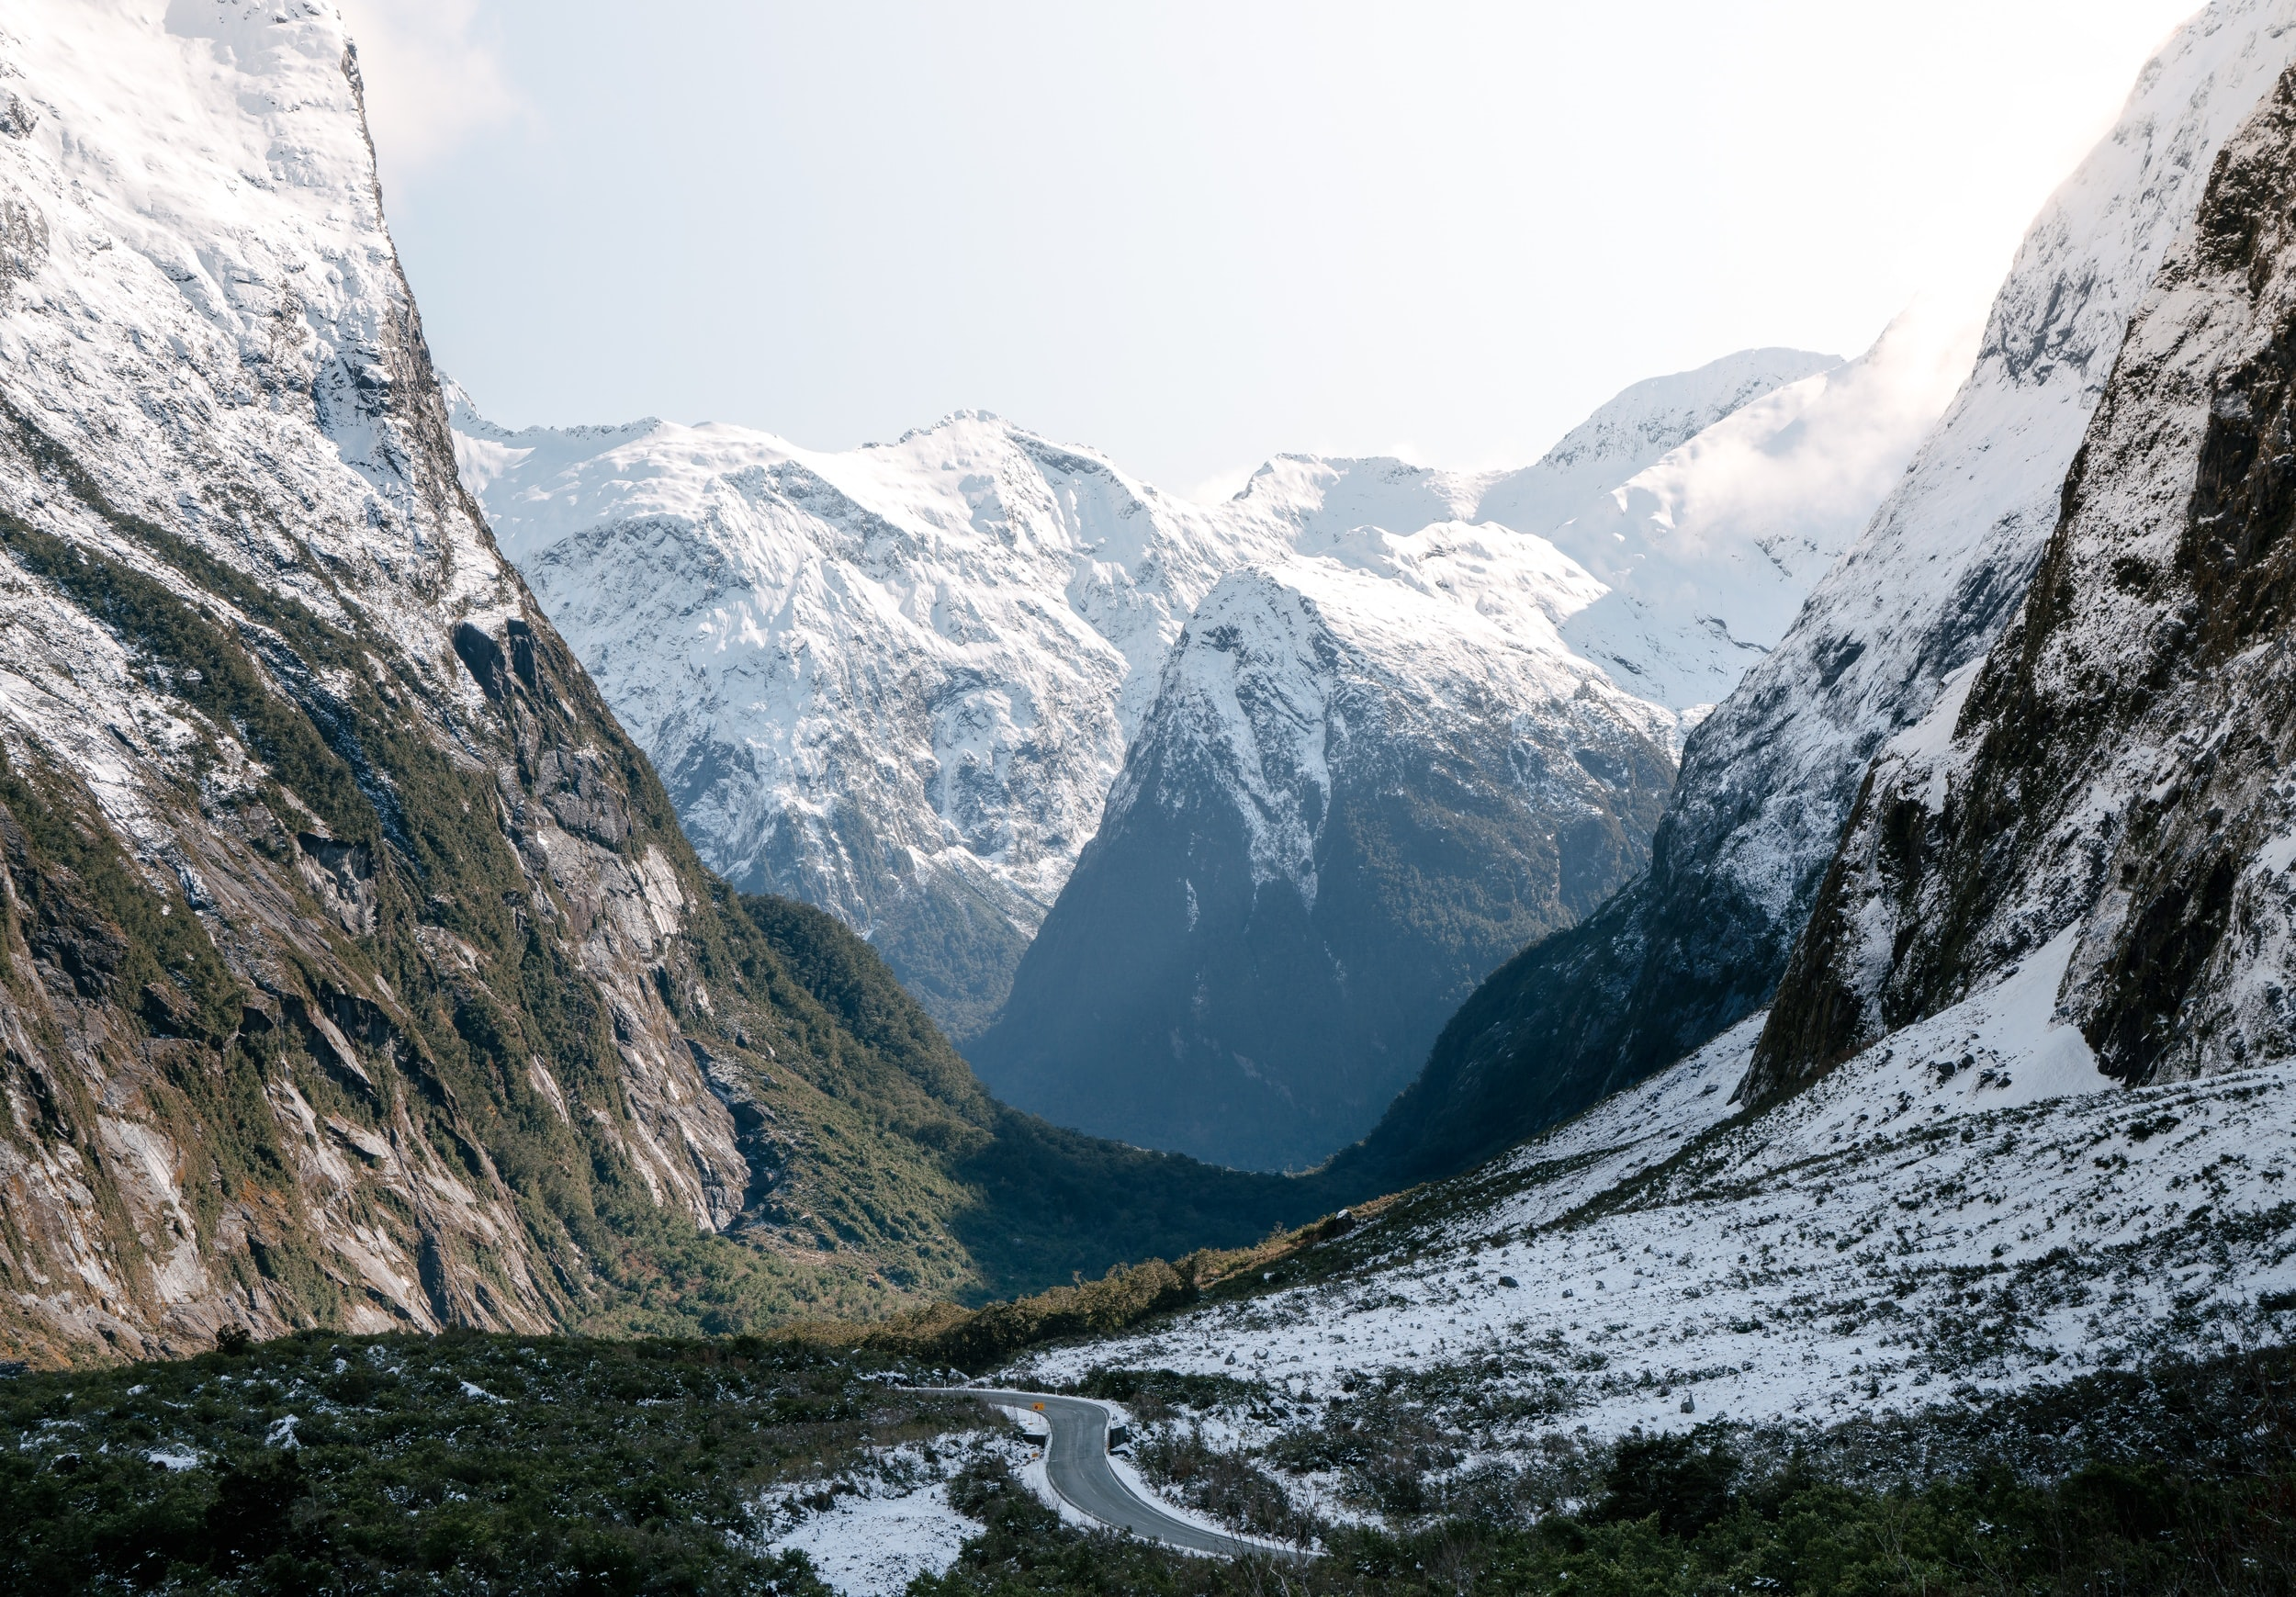 Mountain valley landscape with snowcapped peaks